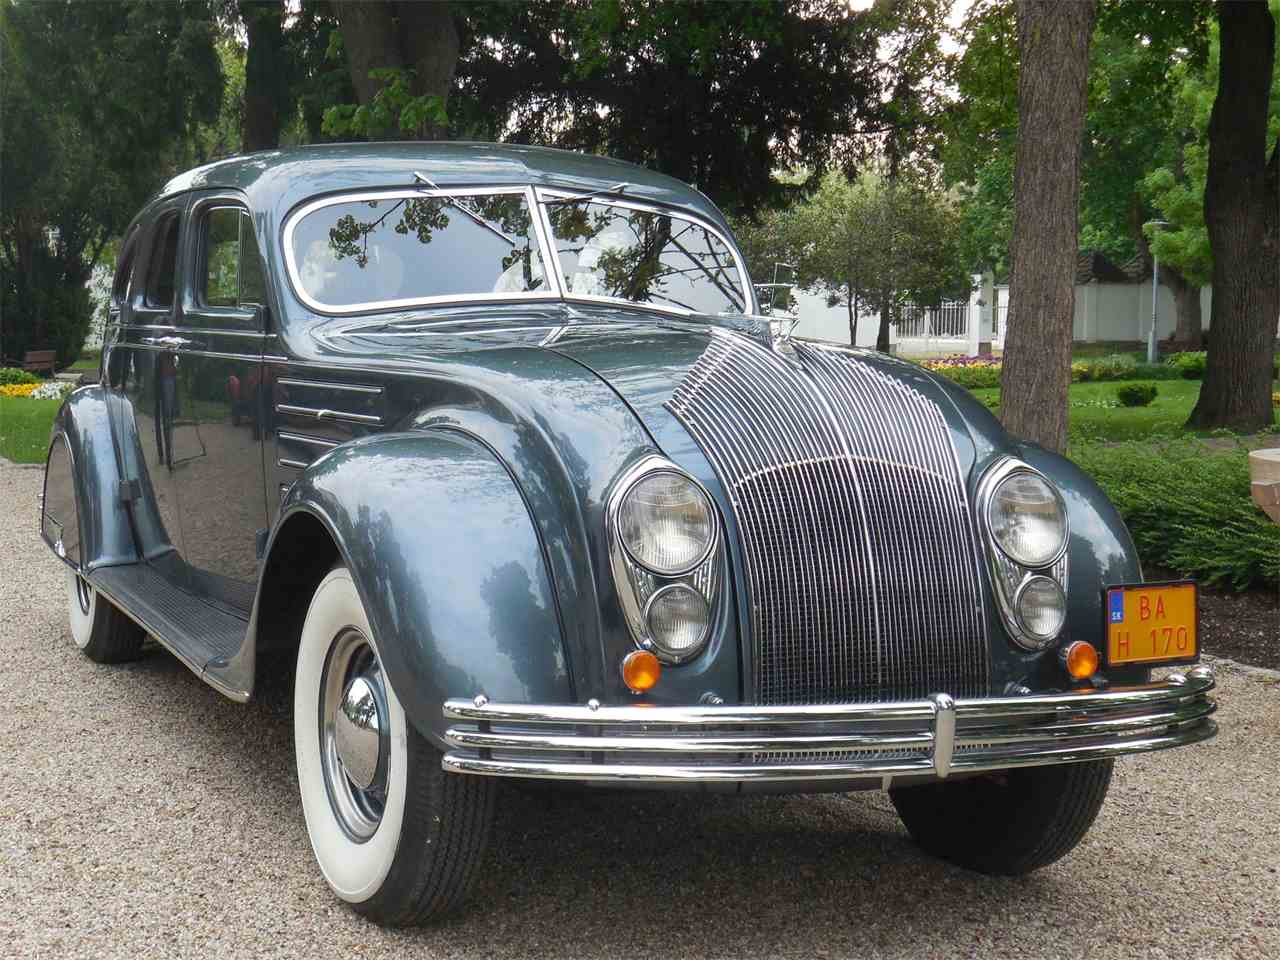 Classic Chrysler Airflow For Sale On